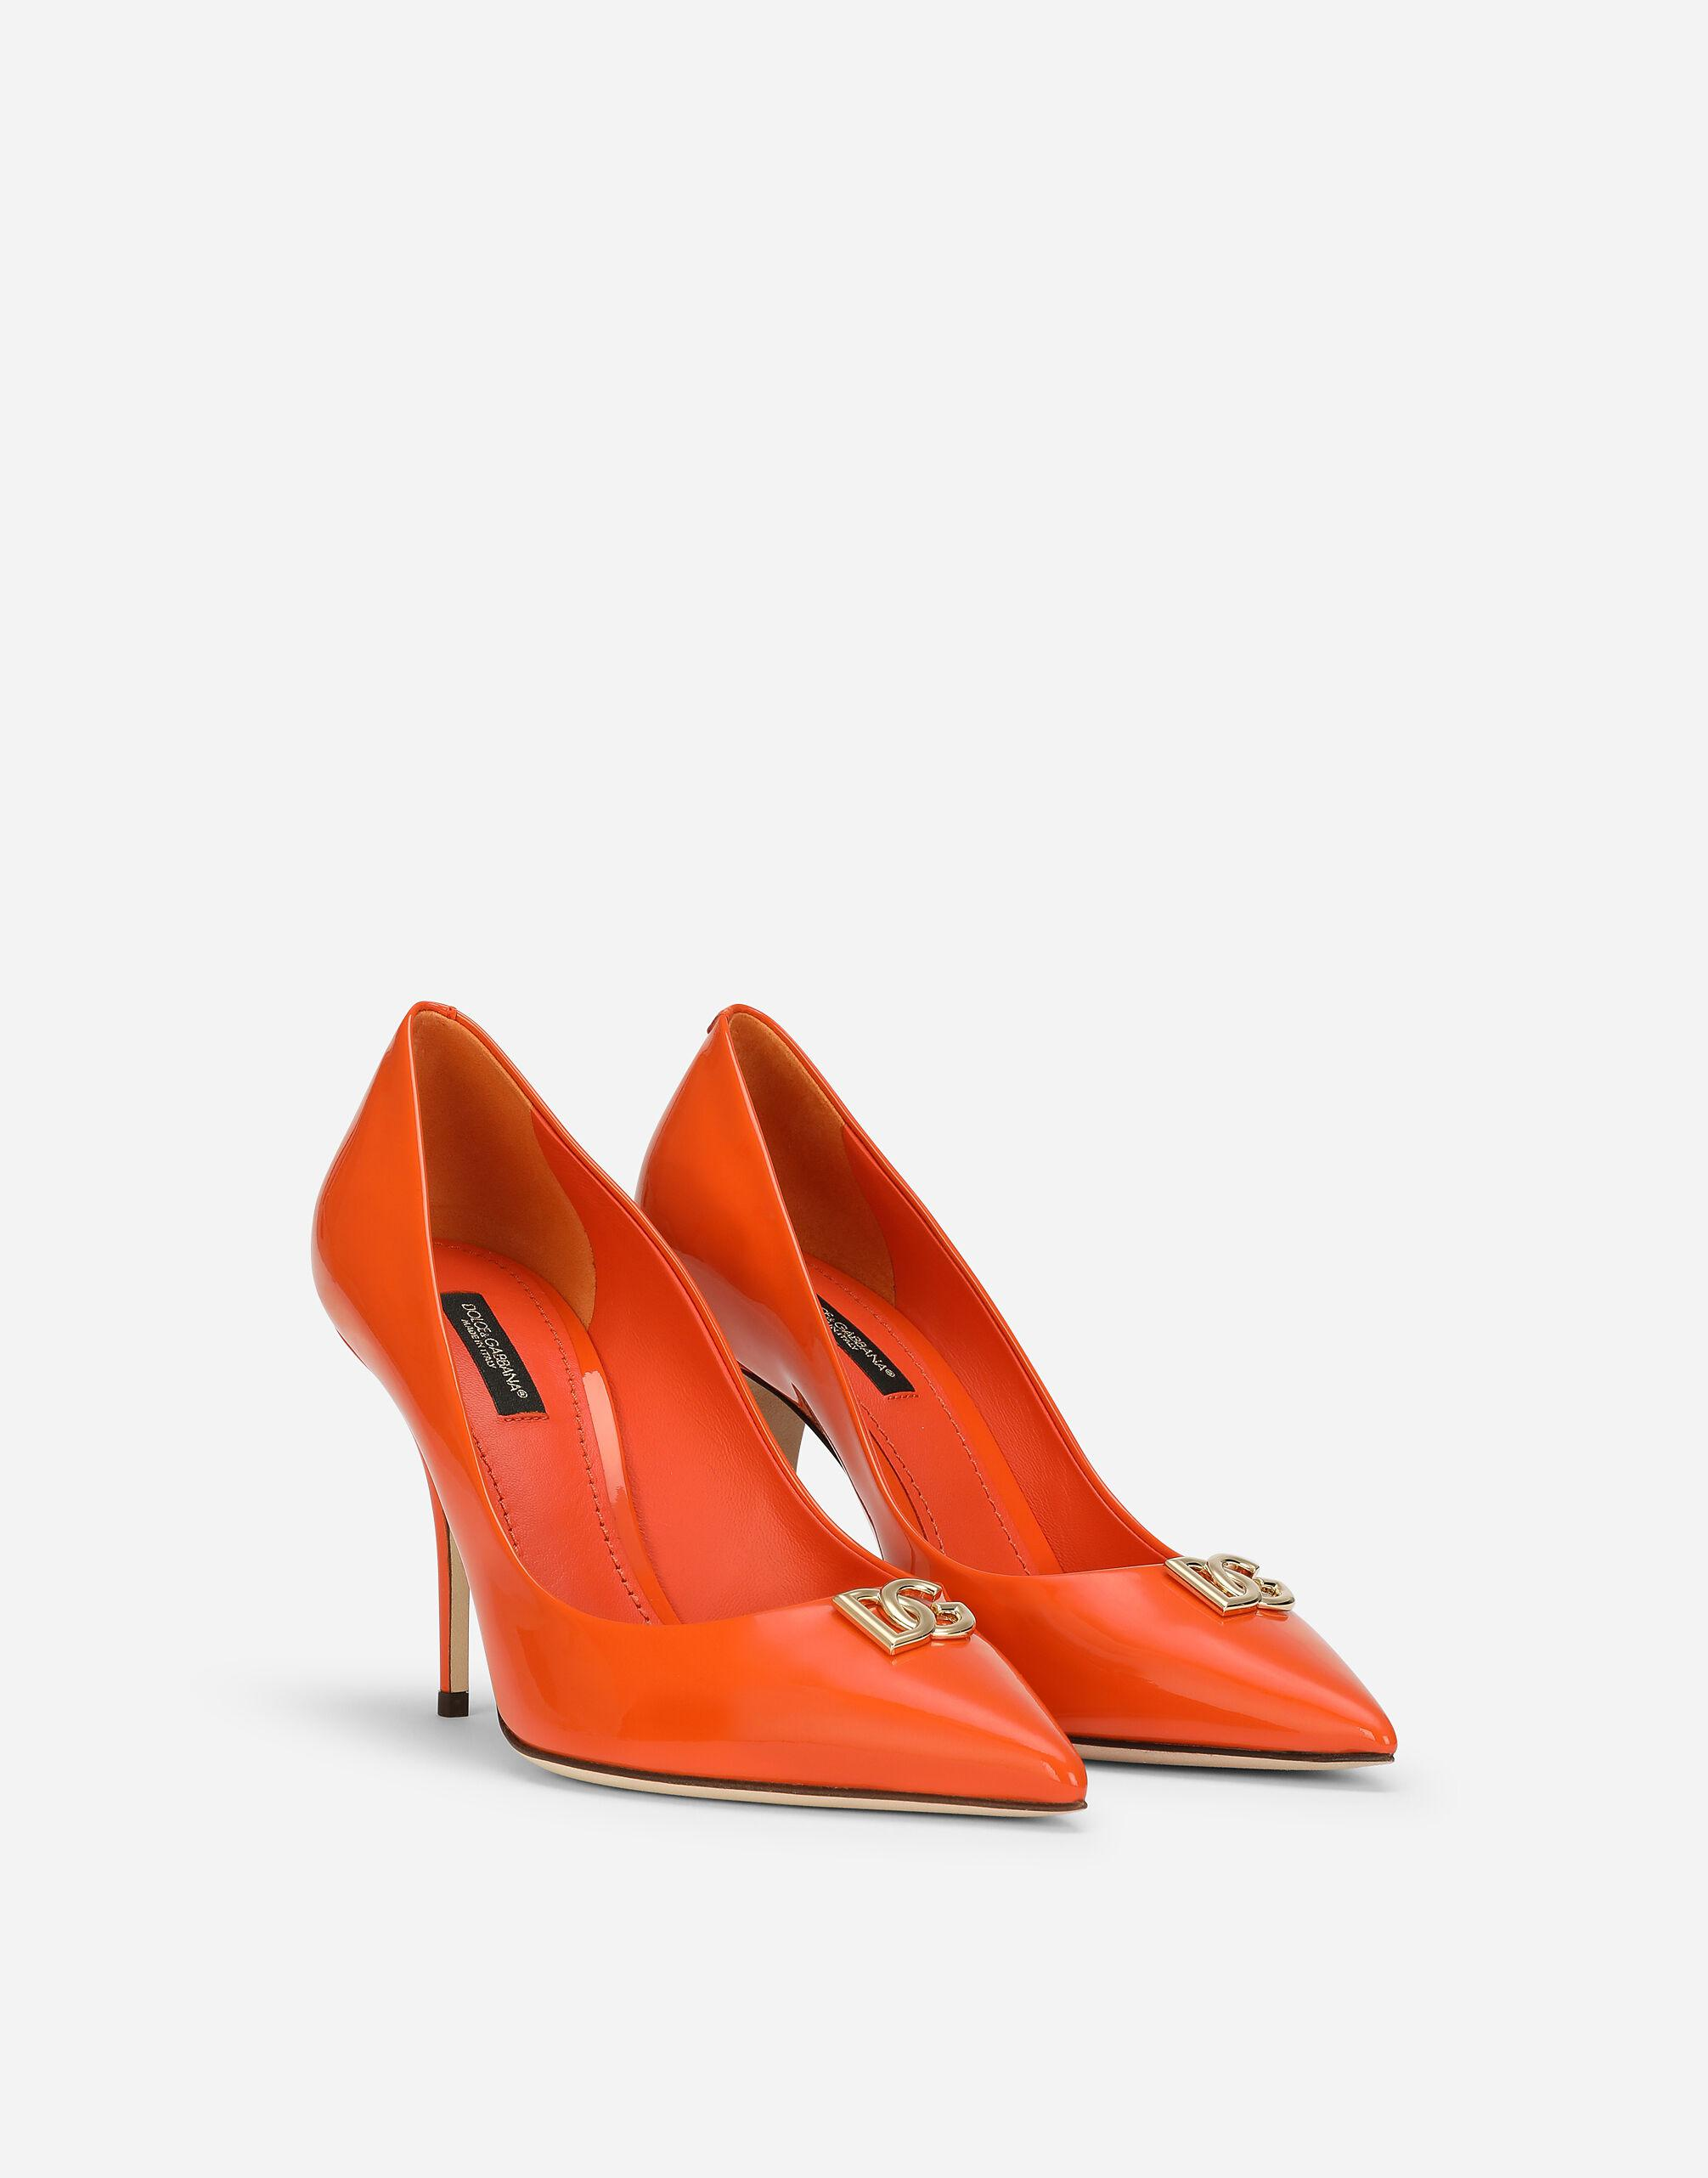 Patent leather pumps with DG logo 1